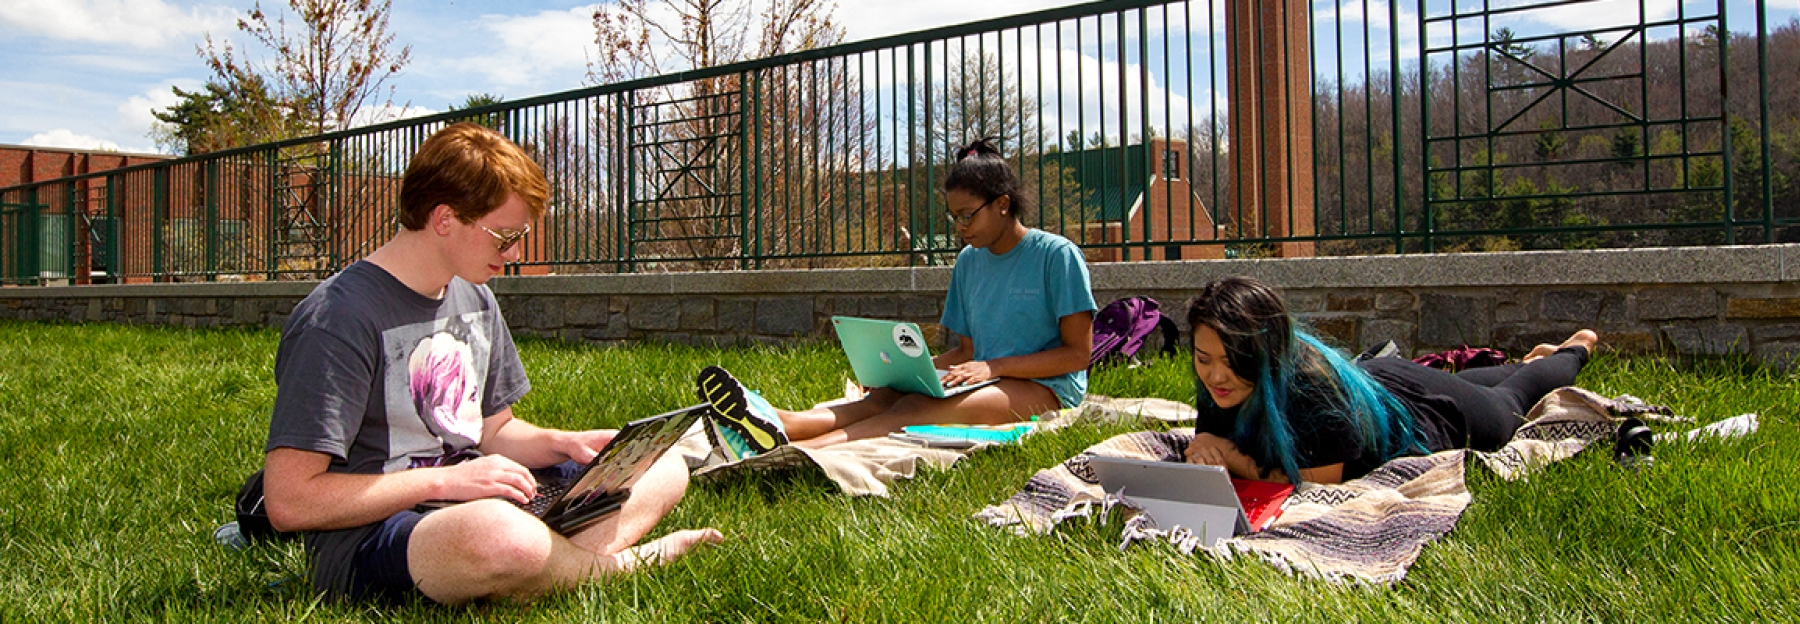 ASU students studying outside on grass